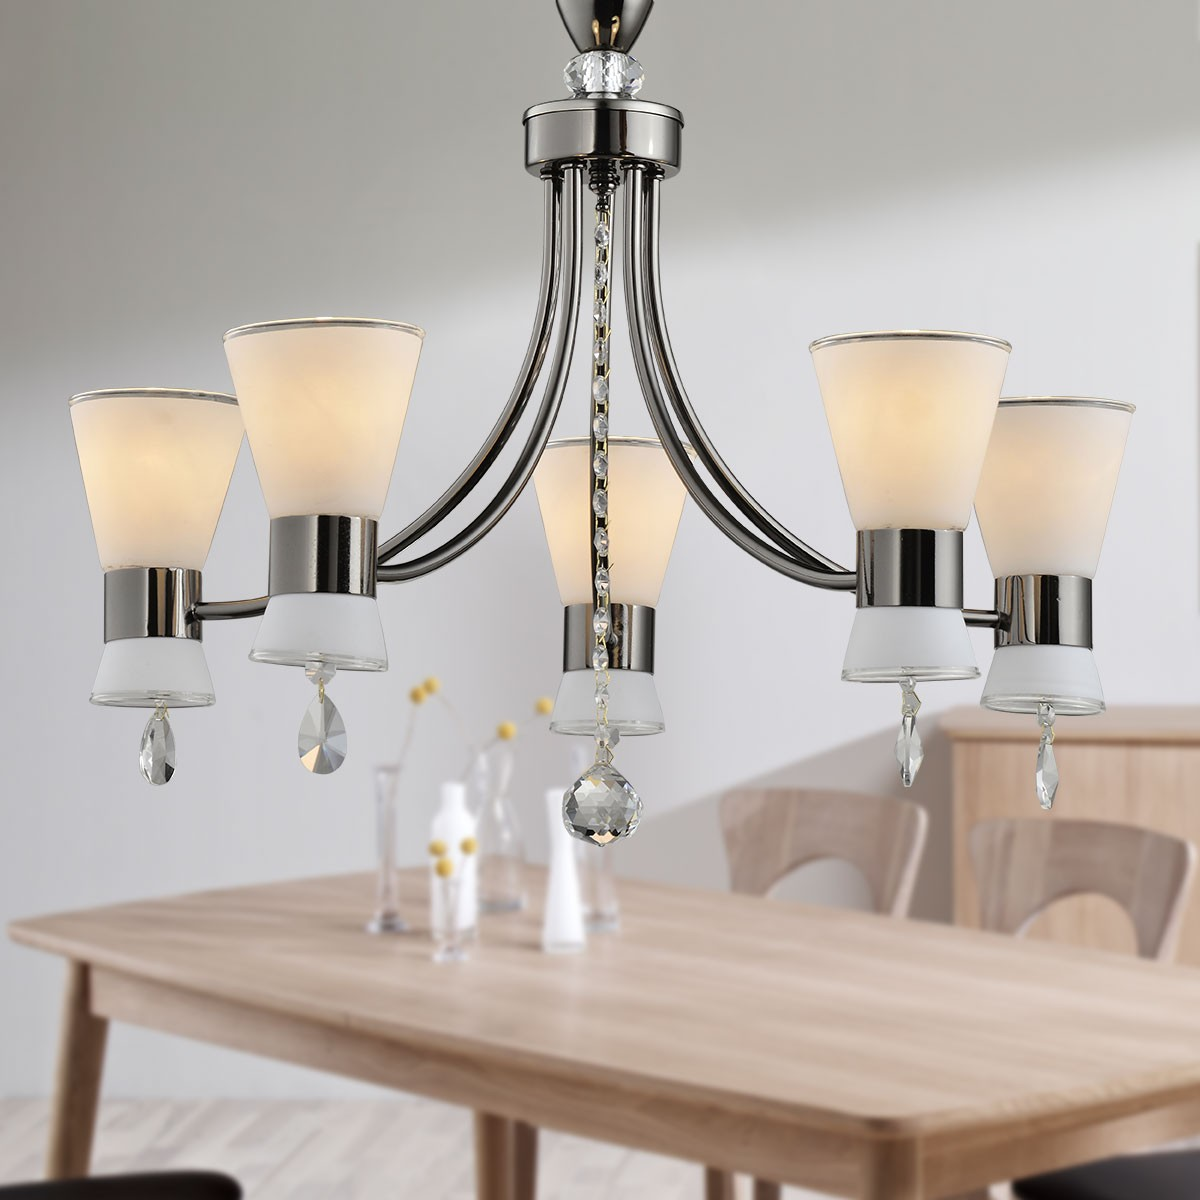 5 Light Black Iron Modern Chandelier With Glass Shades Hkc31333a